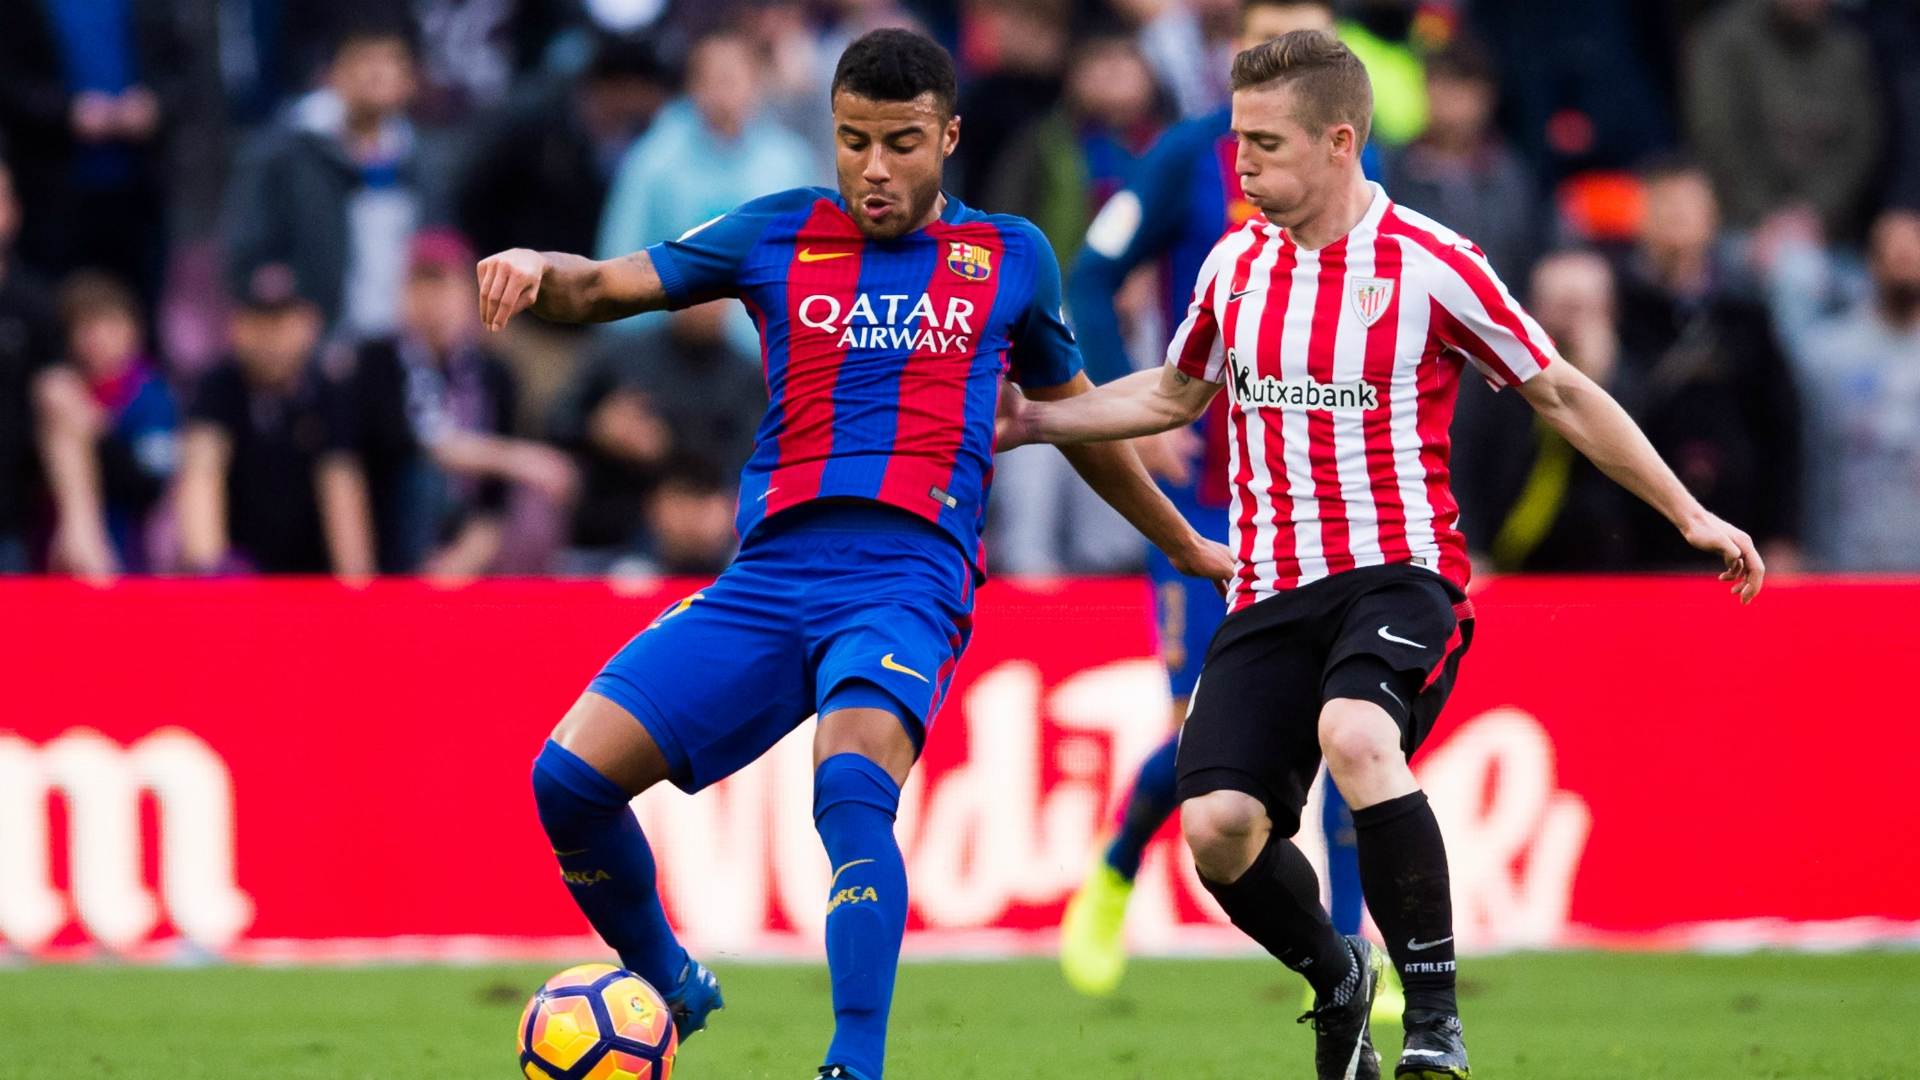 Real Sociedad 2-4 FC Barcelona: 5 Talking Points